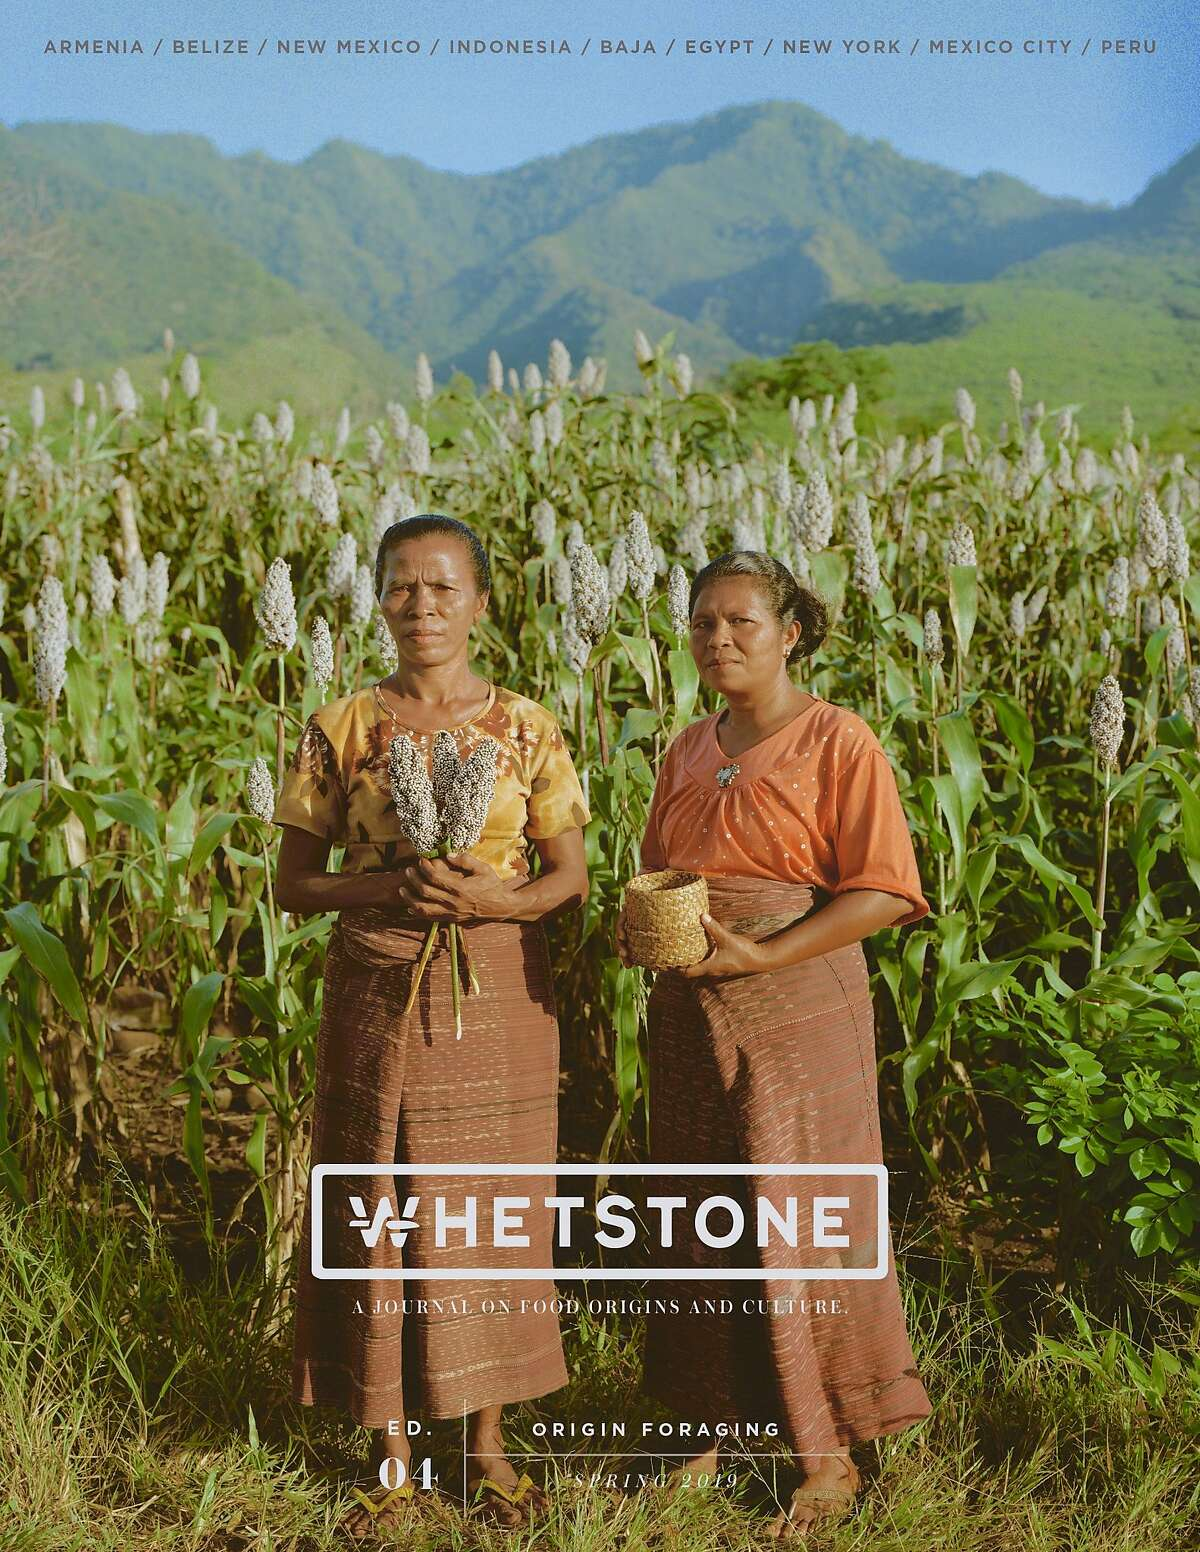 The spring 2019 issue of Whetstone magazine, which is published by Whetstone Media, a Bay Area multimedia company run by founder Stephen Satterfield and Melissa Shi.